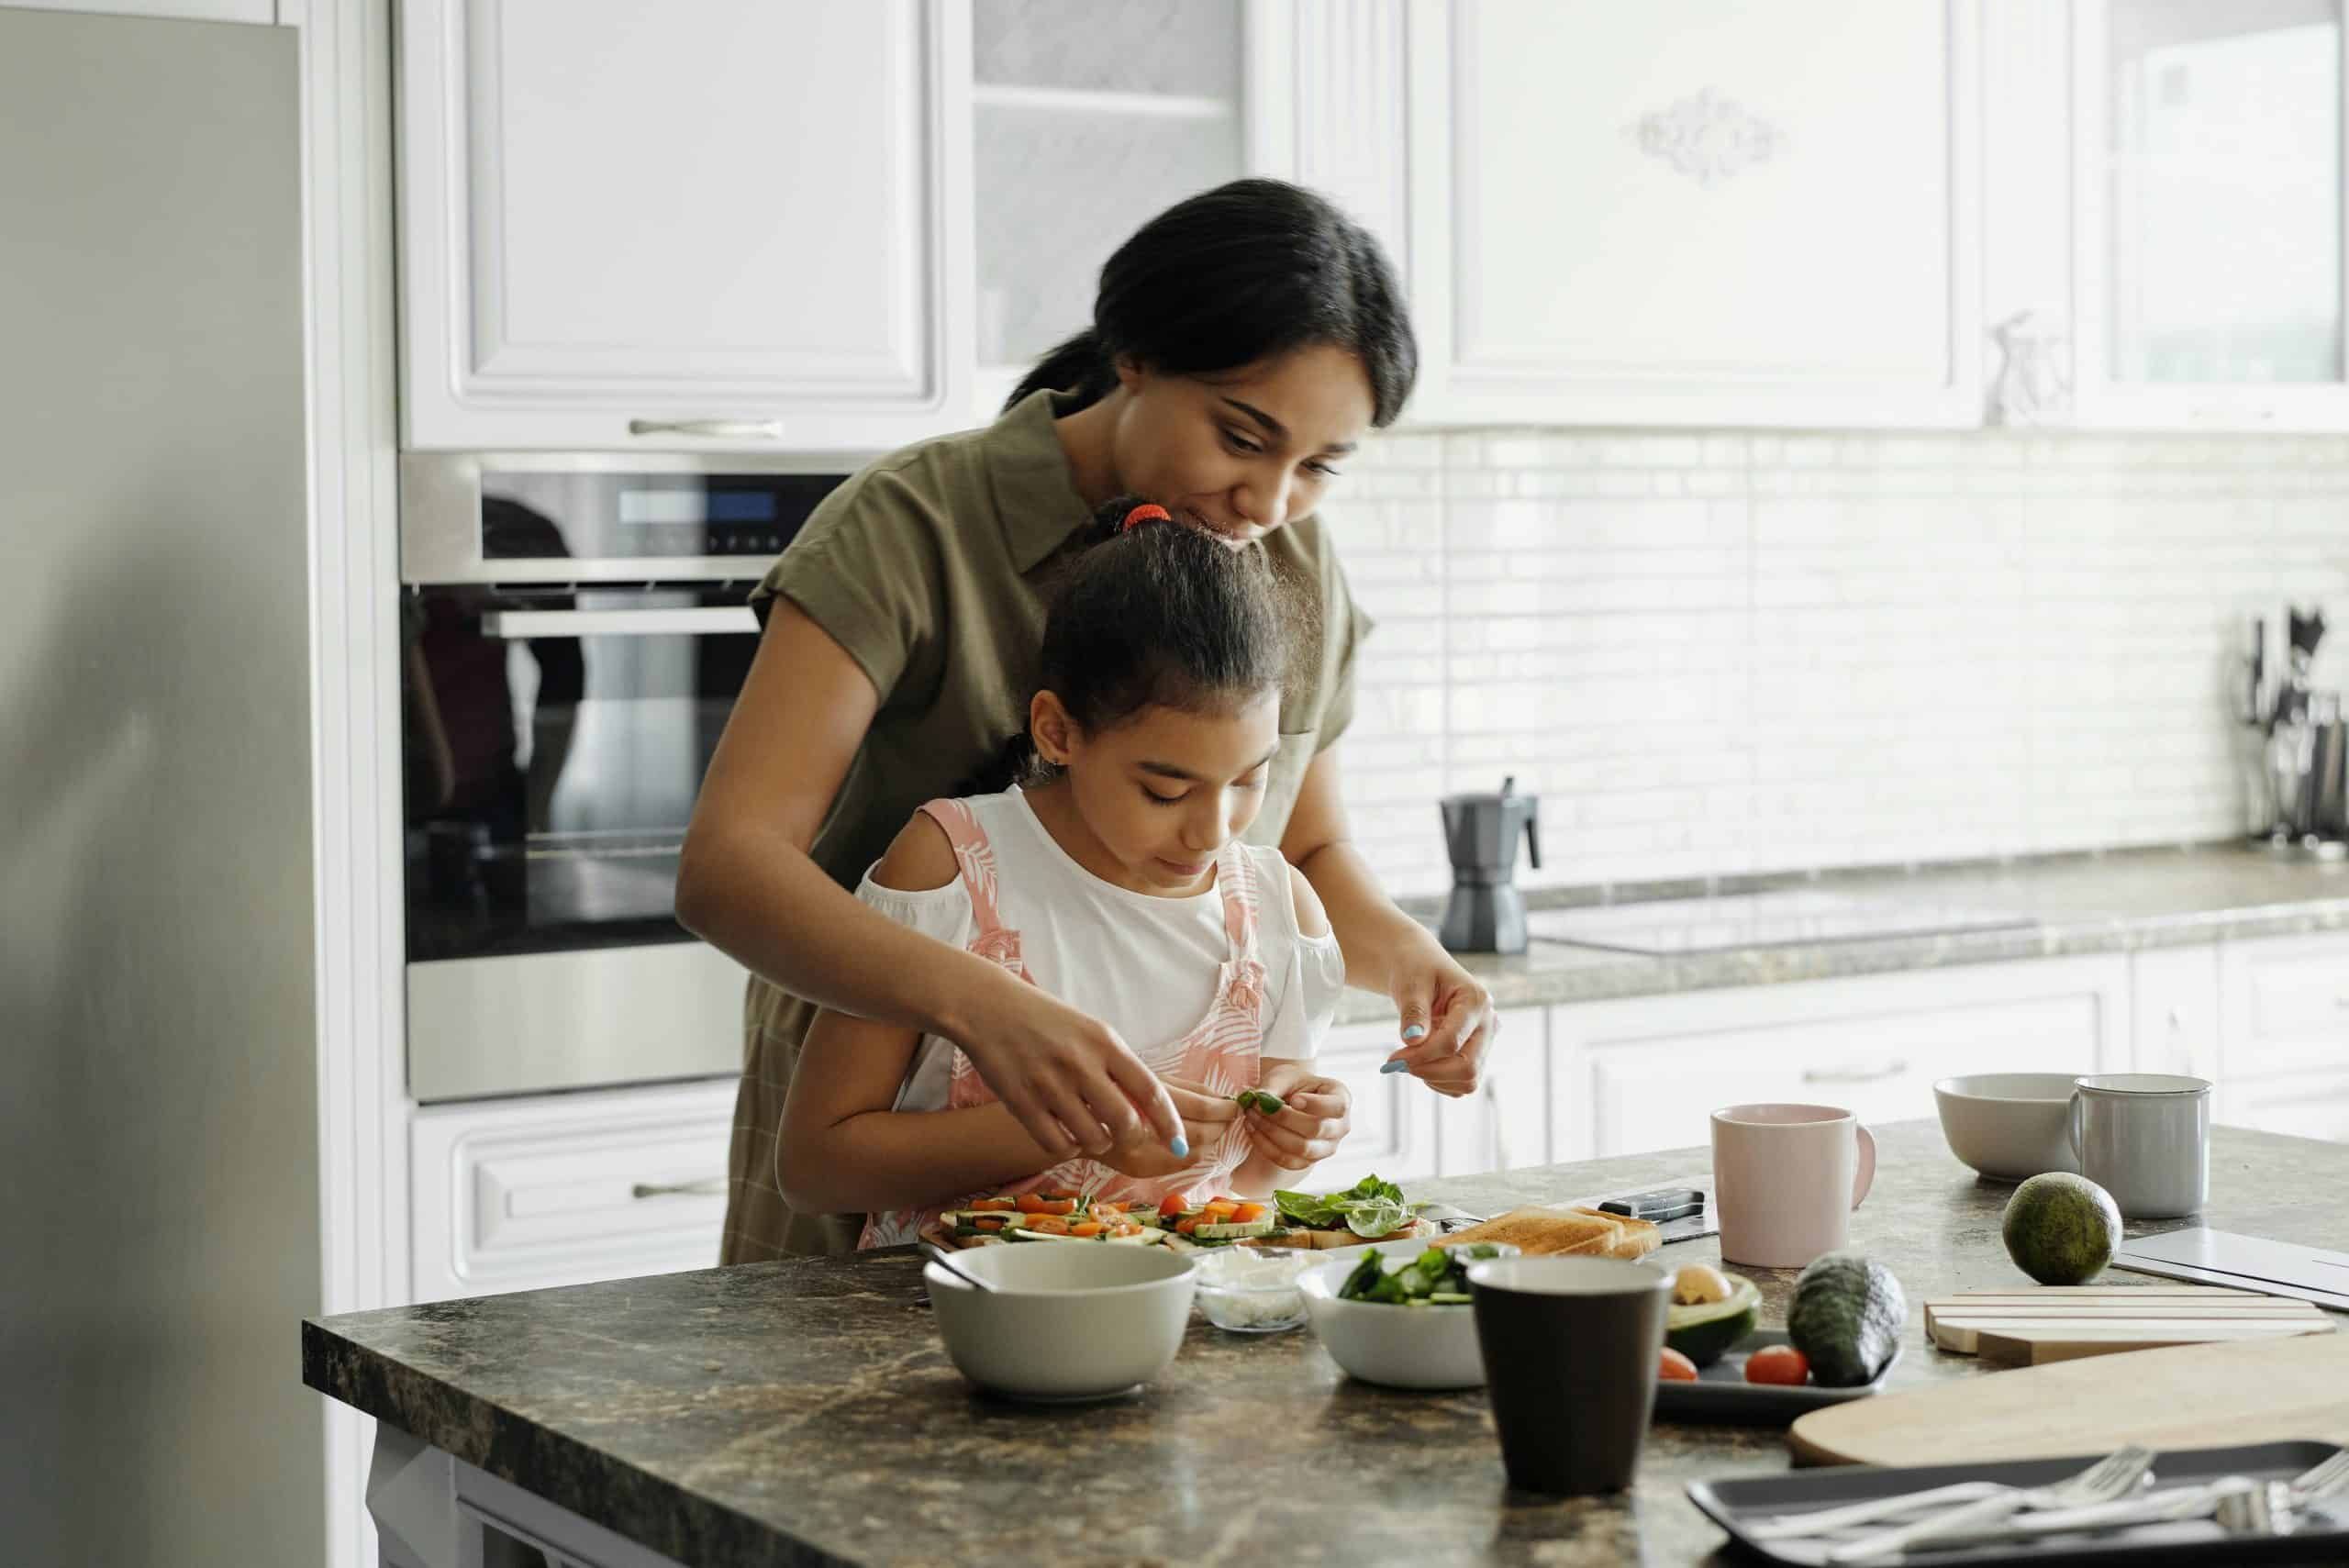 mother-and-daughter-preparing-avocado-toast-4259707, healthy eating